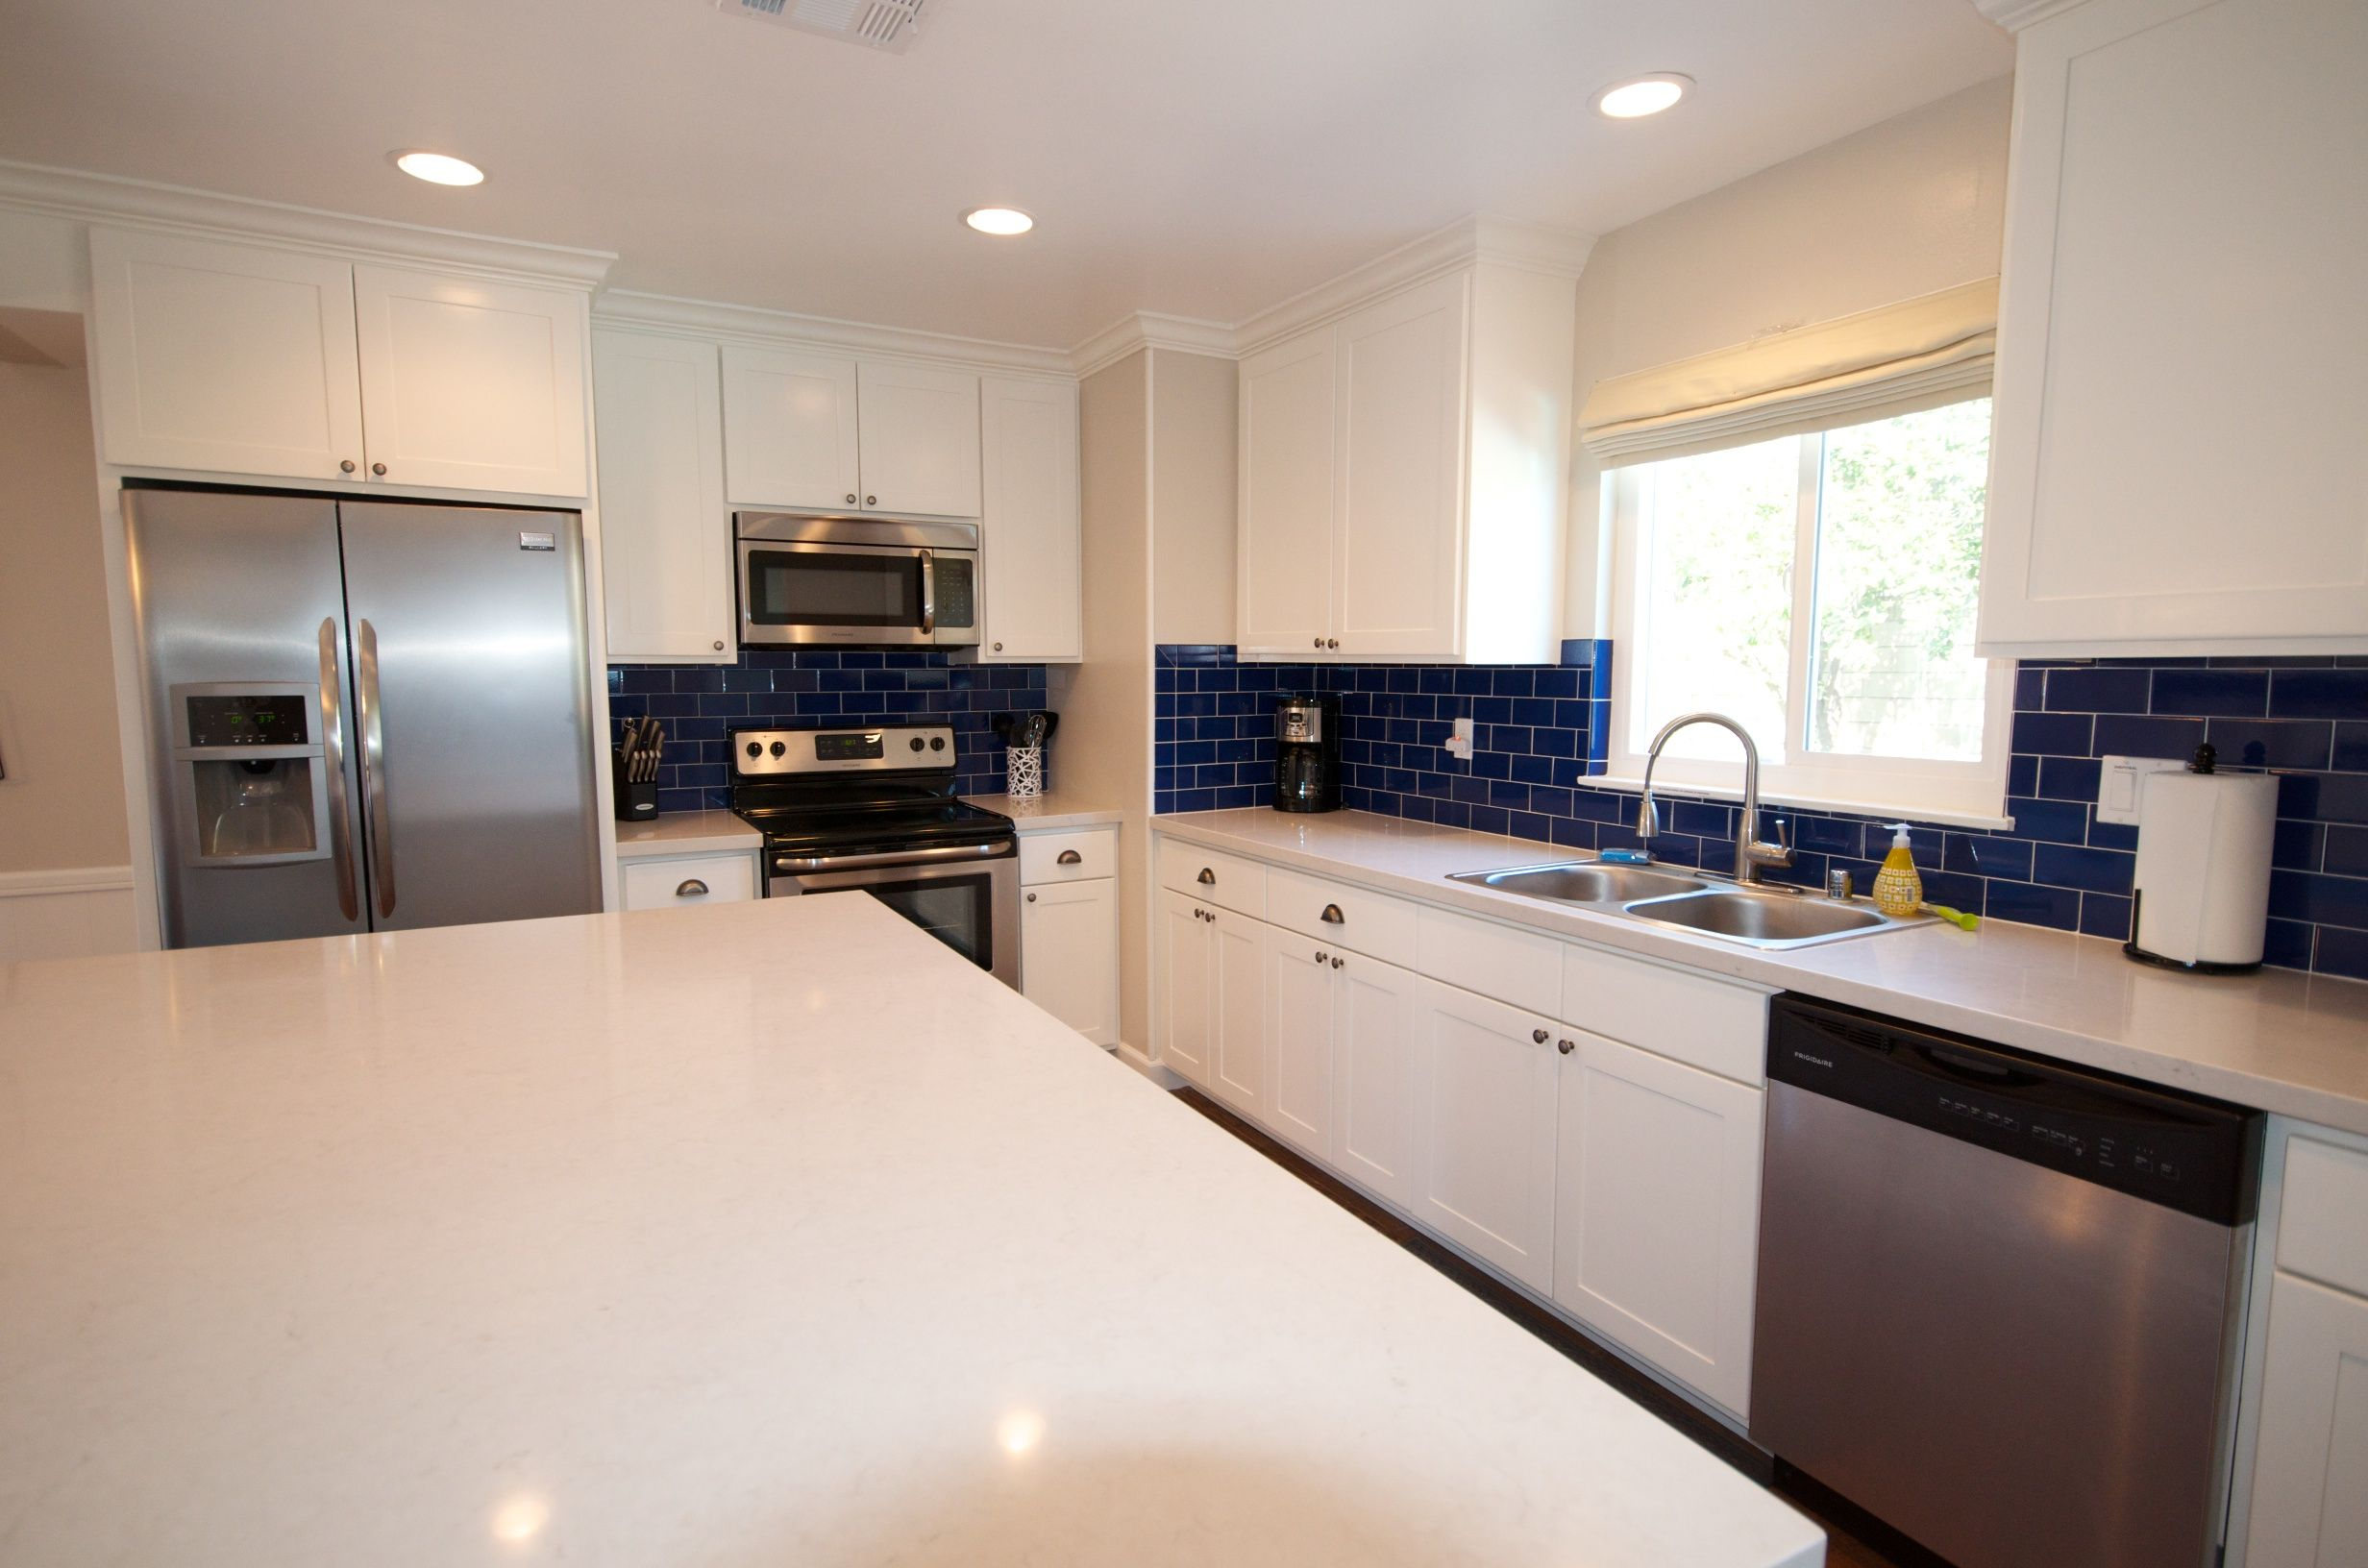 White Cabinets Cobalt Blue Subway Tile From Home Depot London Fog Quartzite Counter Tops